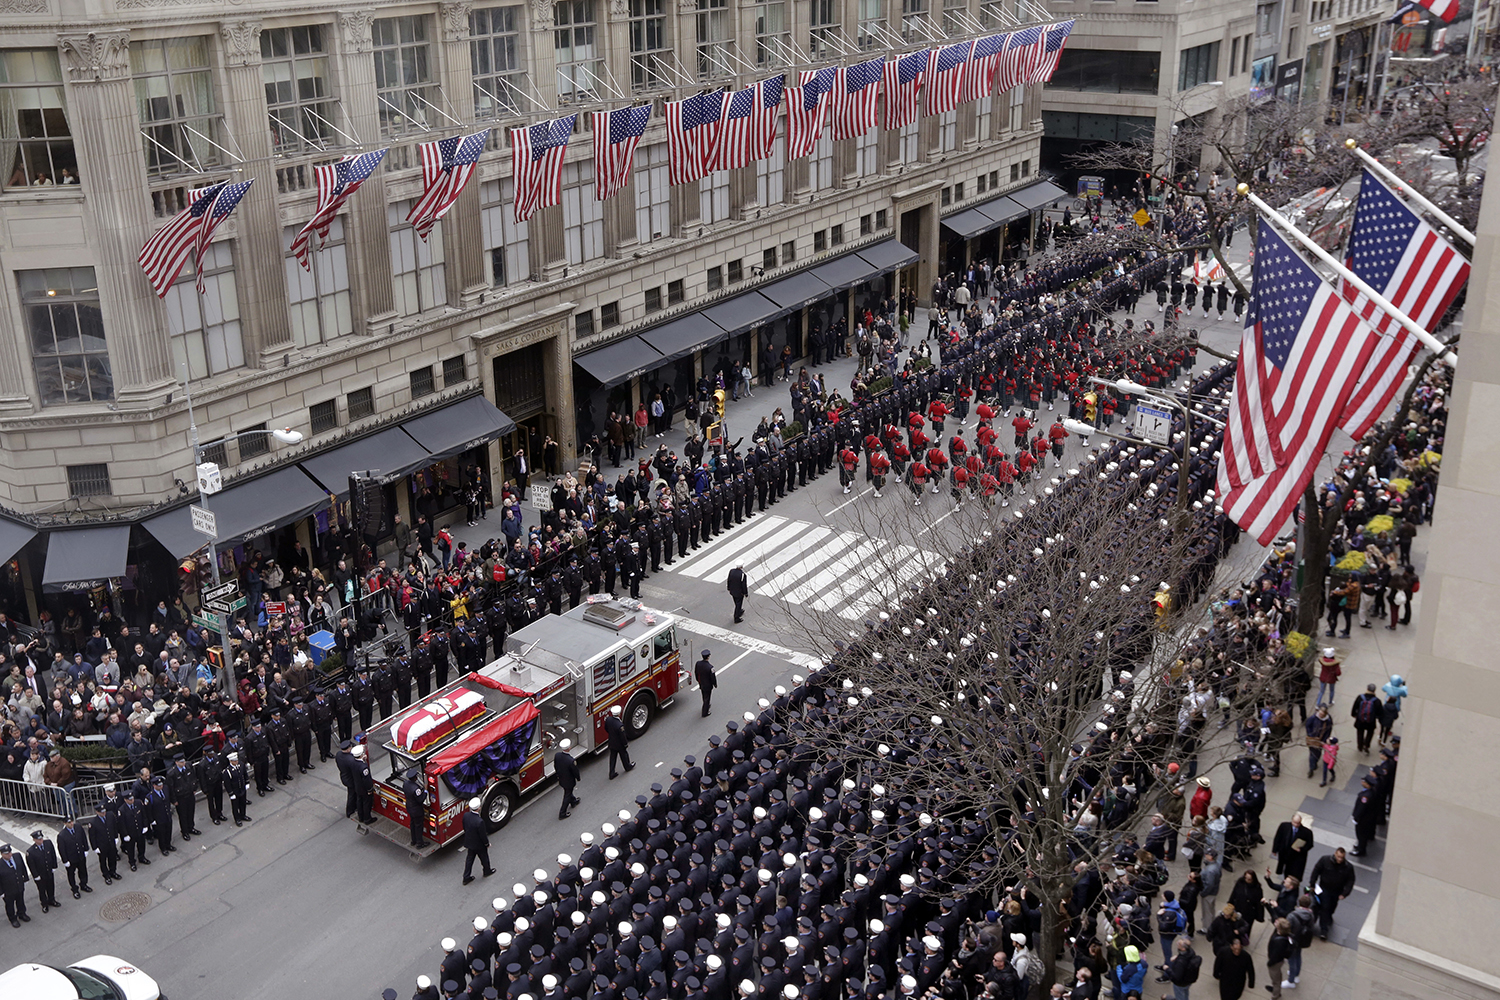 <div class='meta'><div class='origin-logo' data-origin='AP'></div><span class='caption-text' data-credit='Richard Drew'>The casket of New York City firefighter Michael Davidson is carried on a fire truck down Fifth Avenue as it leaves St. Patrick's Cathedral after his funeral.</span></div>